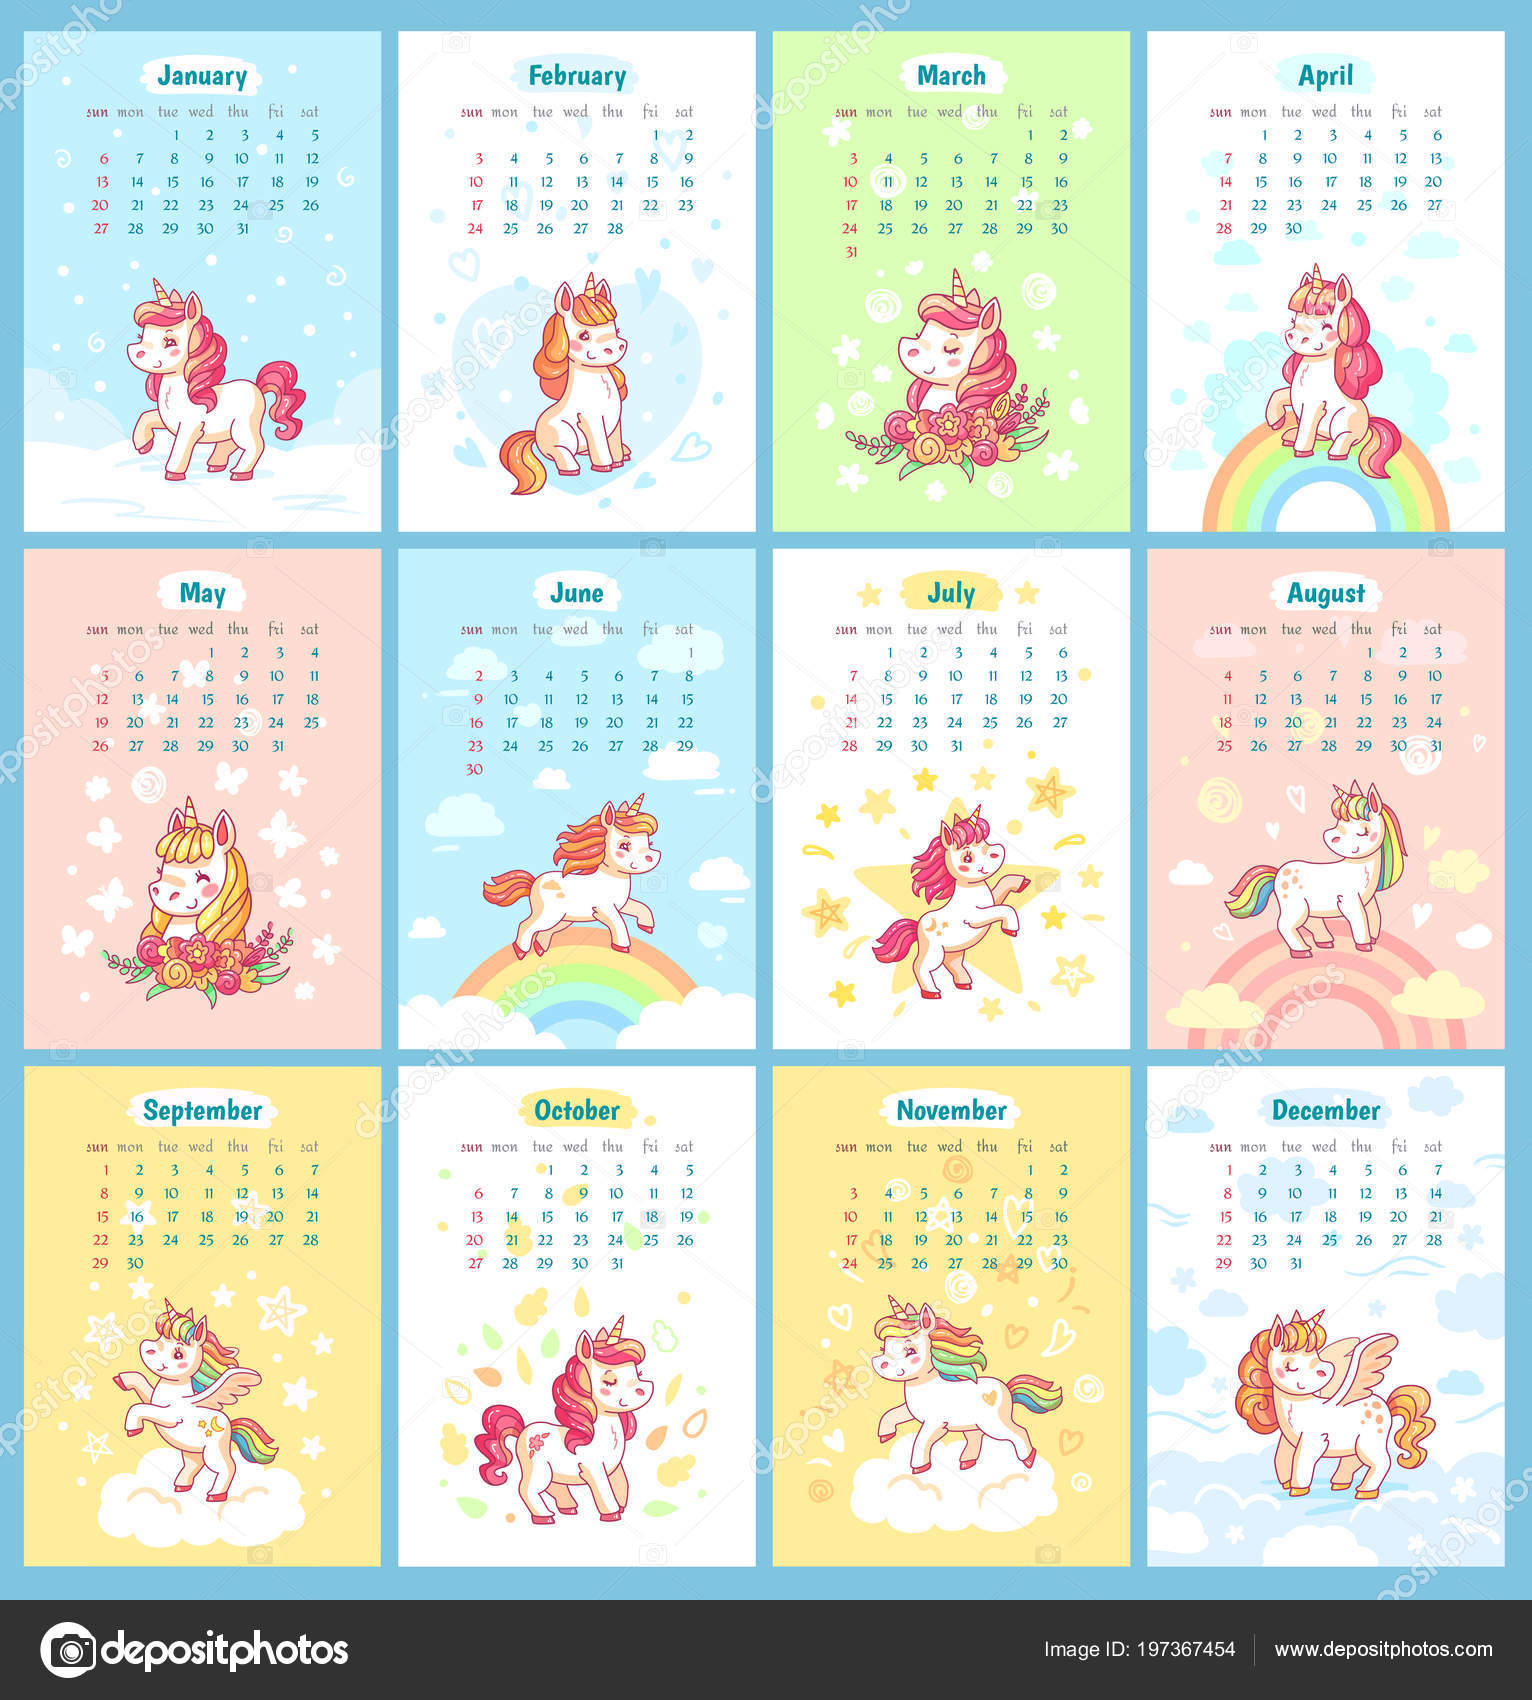 Calendario Para Kinder 2019.Sweet Cute Magic Unicorn 2019 Calendar For Kids Fairy